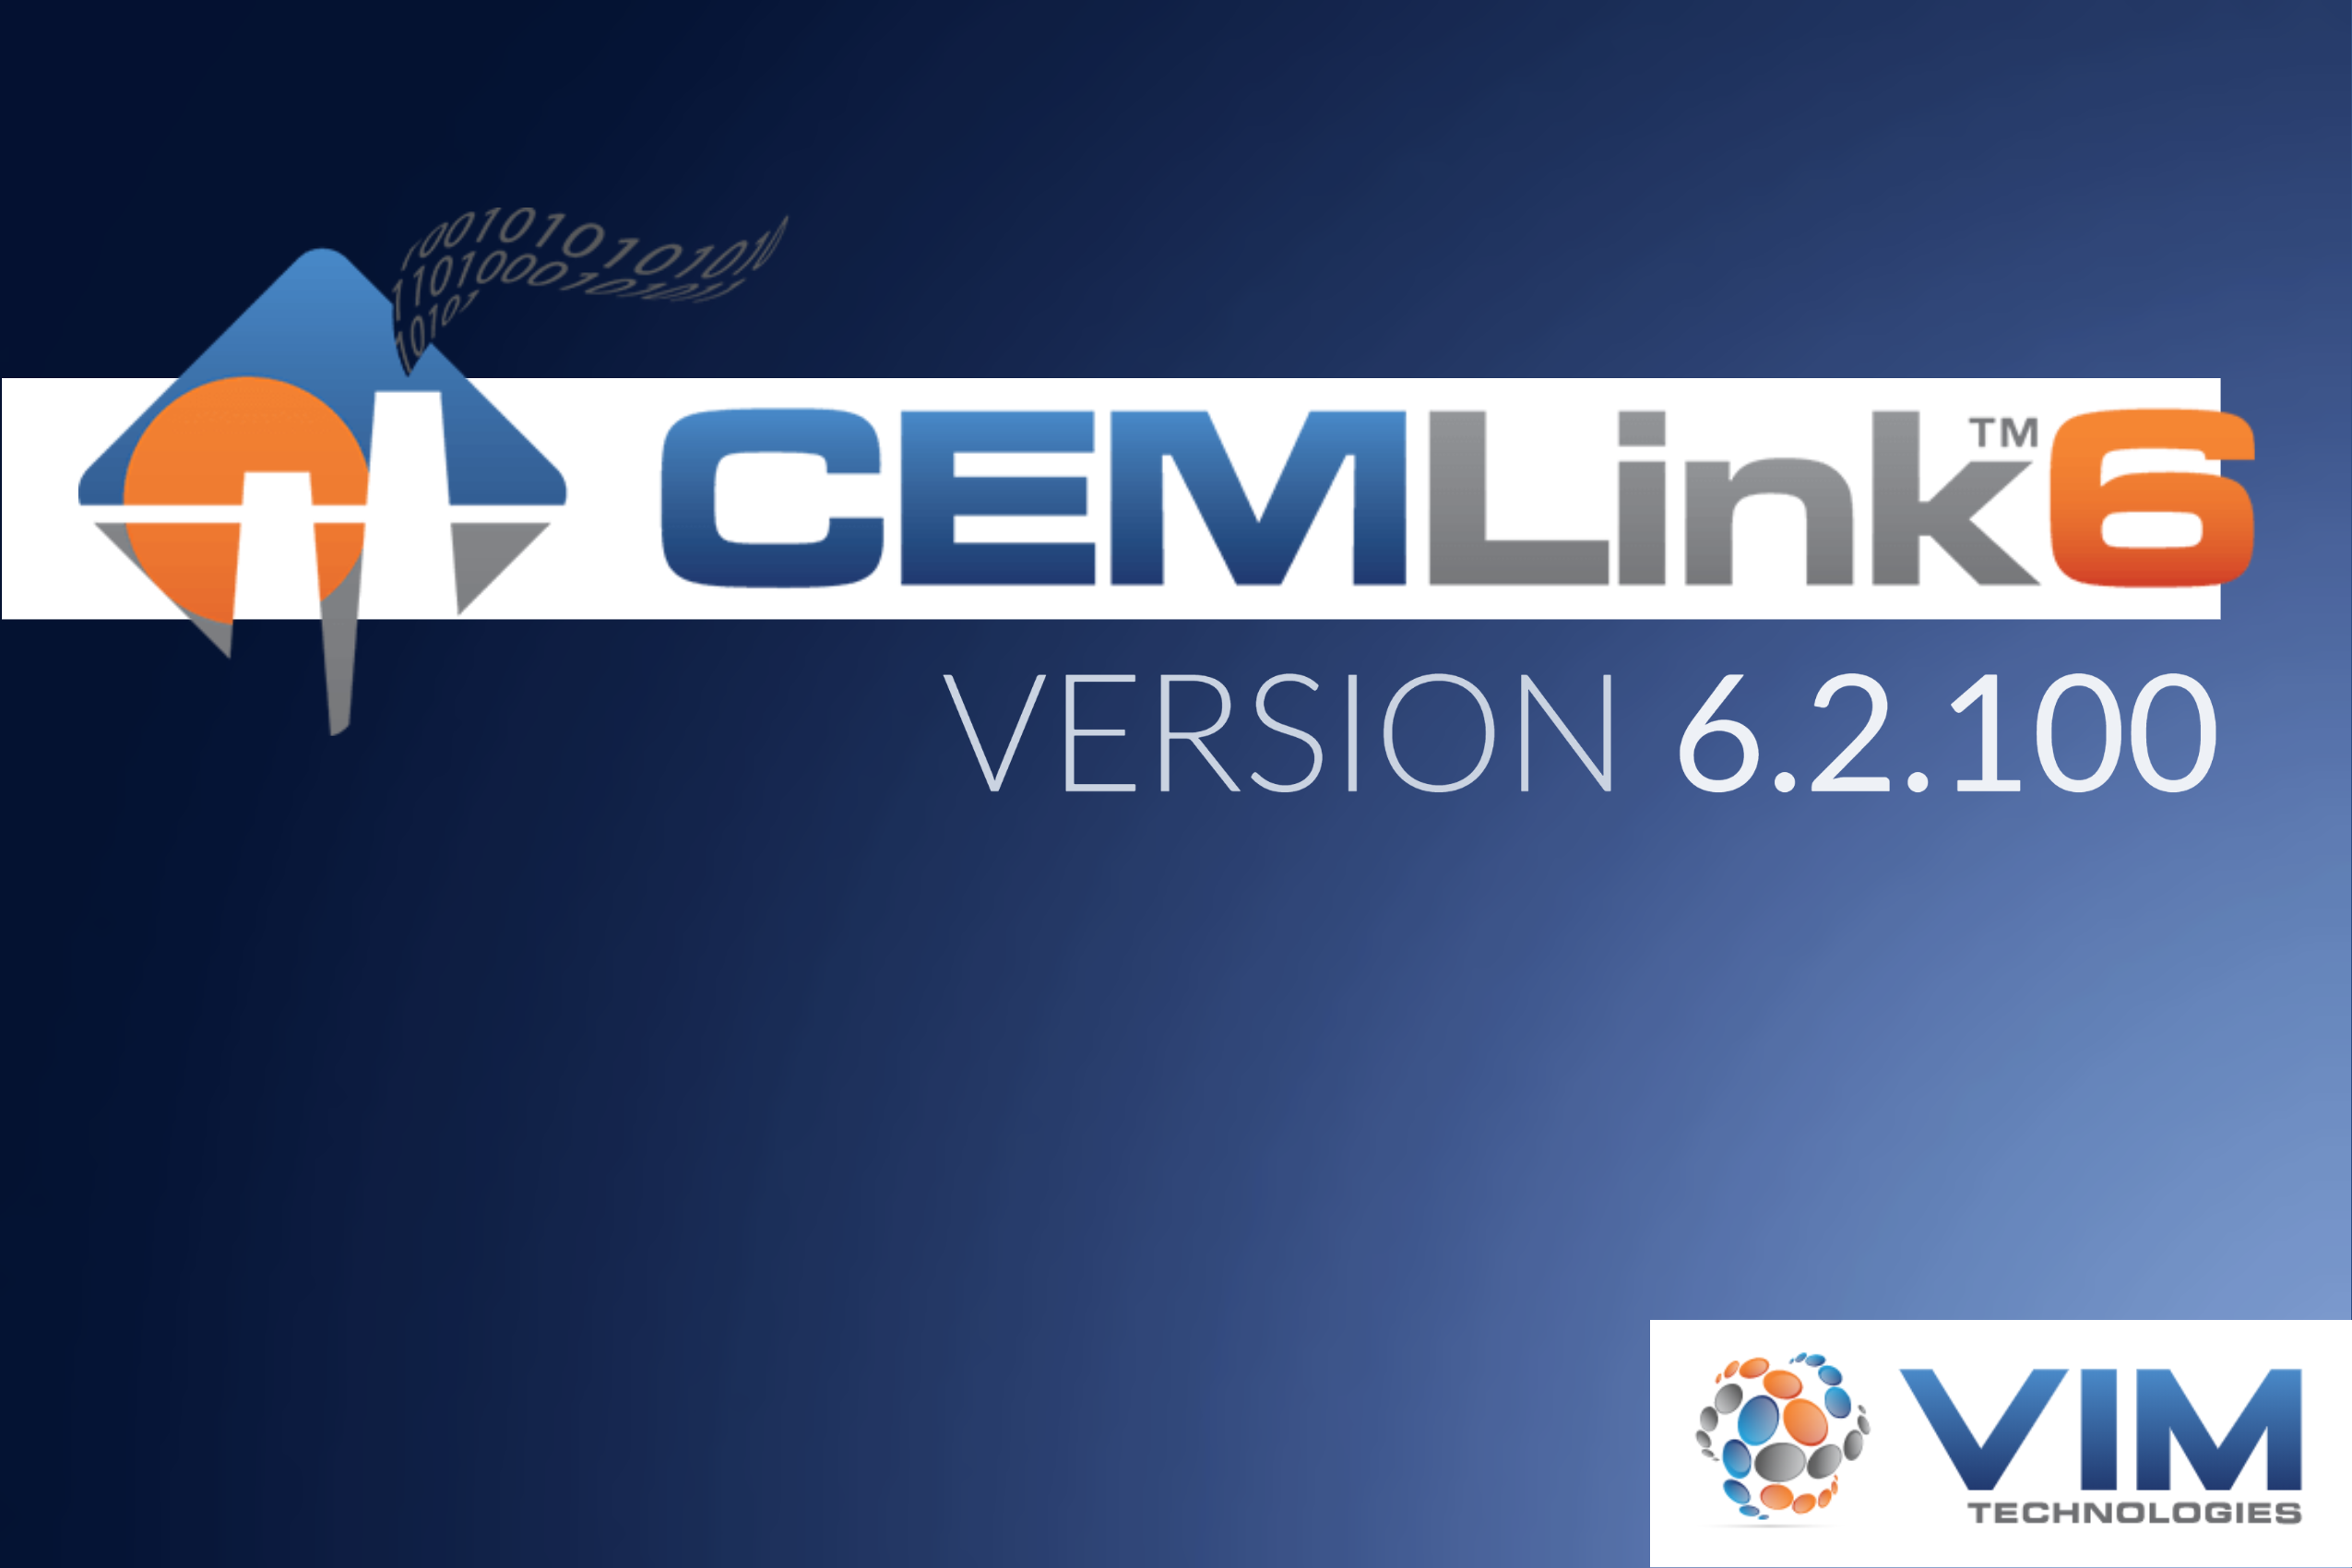 Version 6.2.100 of CEMLink6 Now Available